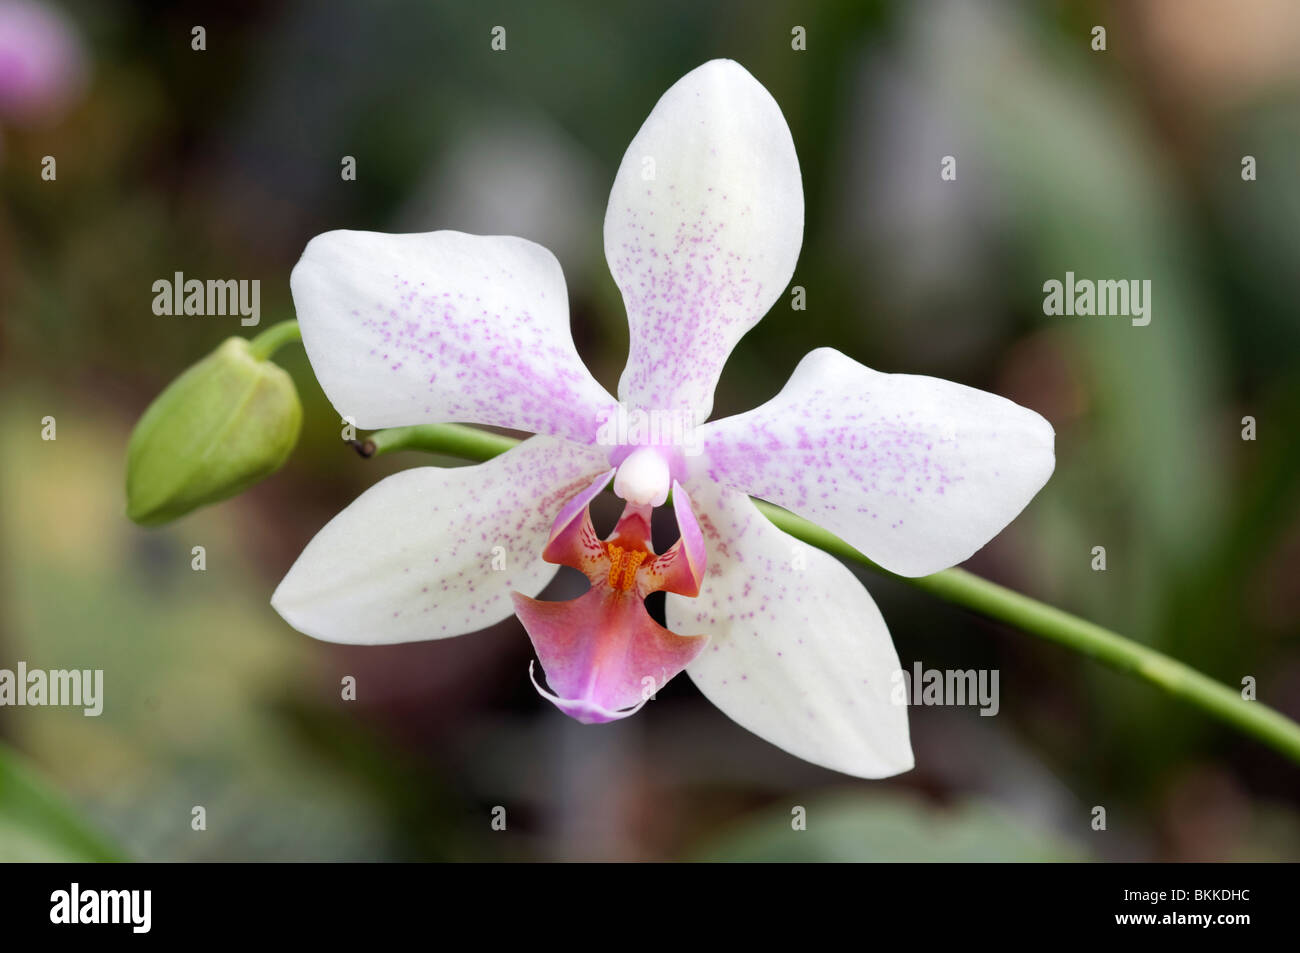 Butterfly Orchid (Phalaenopsis sp.). White flower with pink markings. - Stock Image